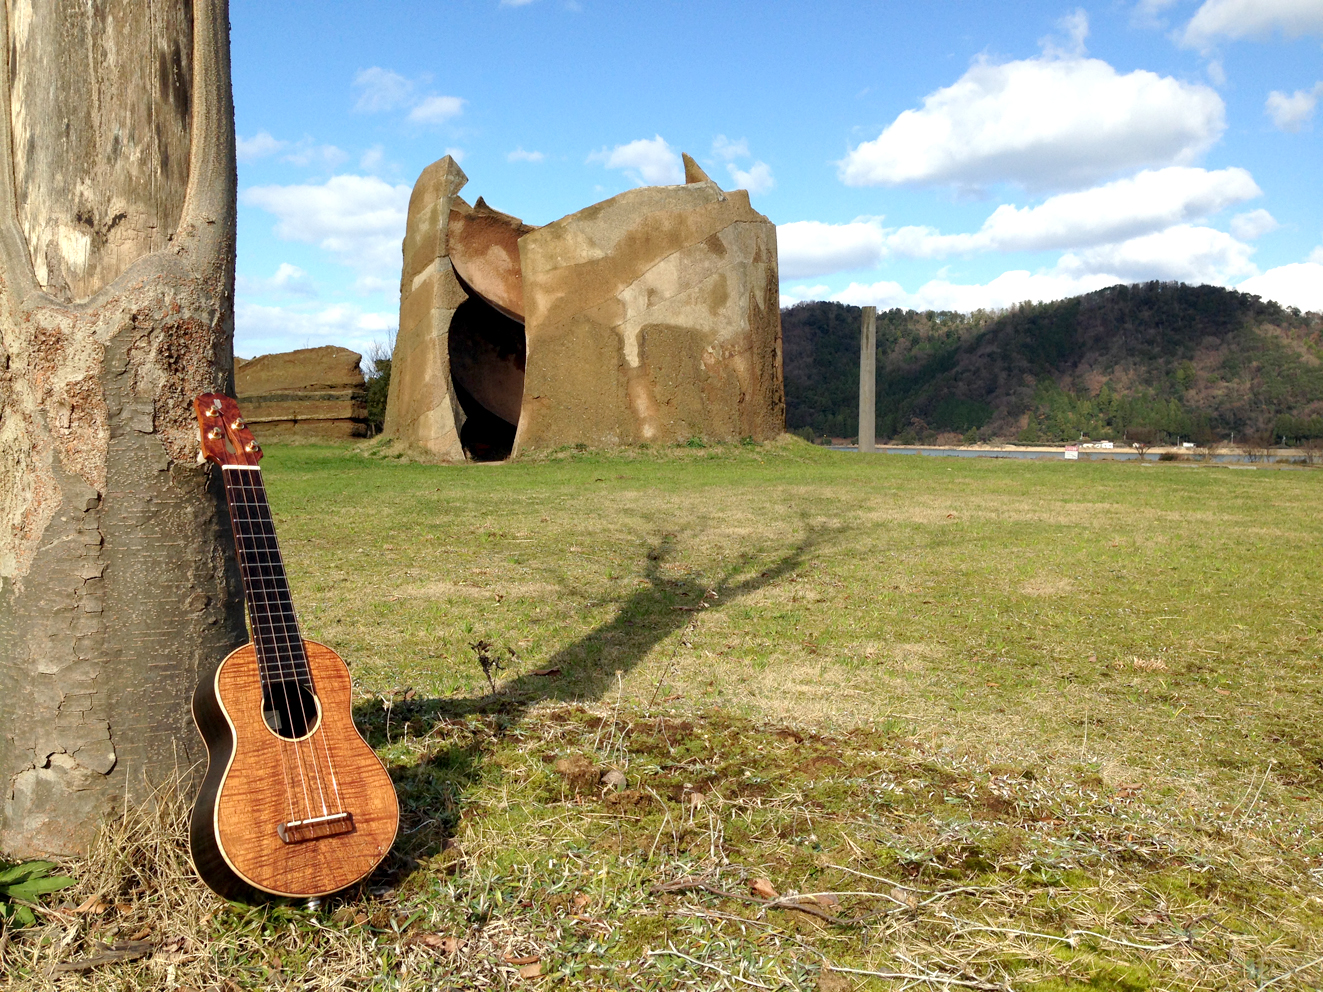 Ukulele photo & TAB house